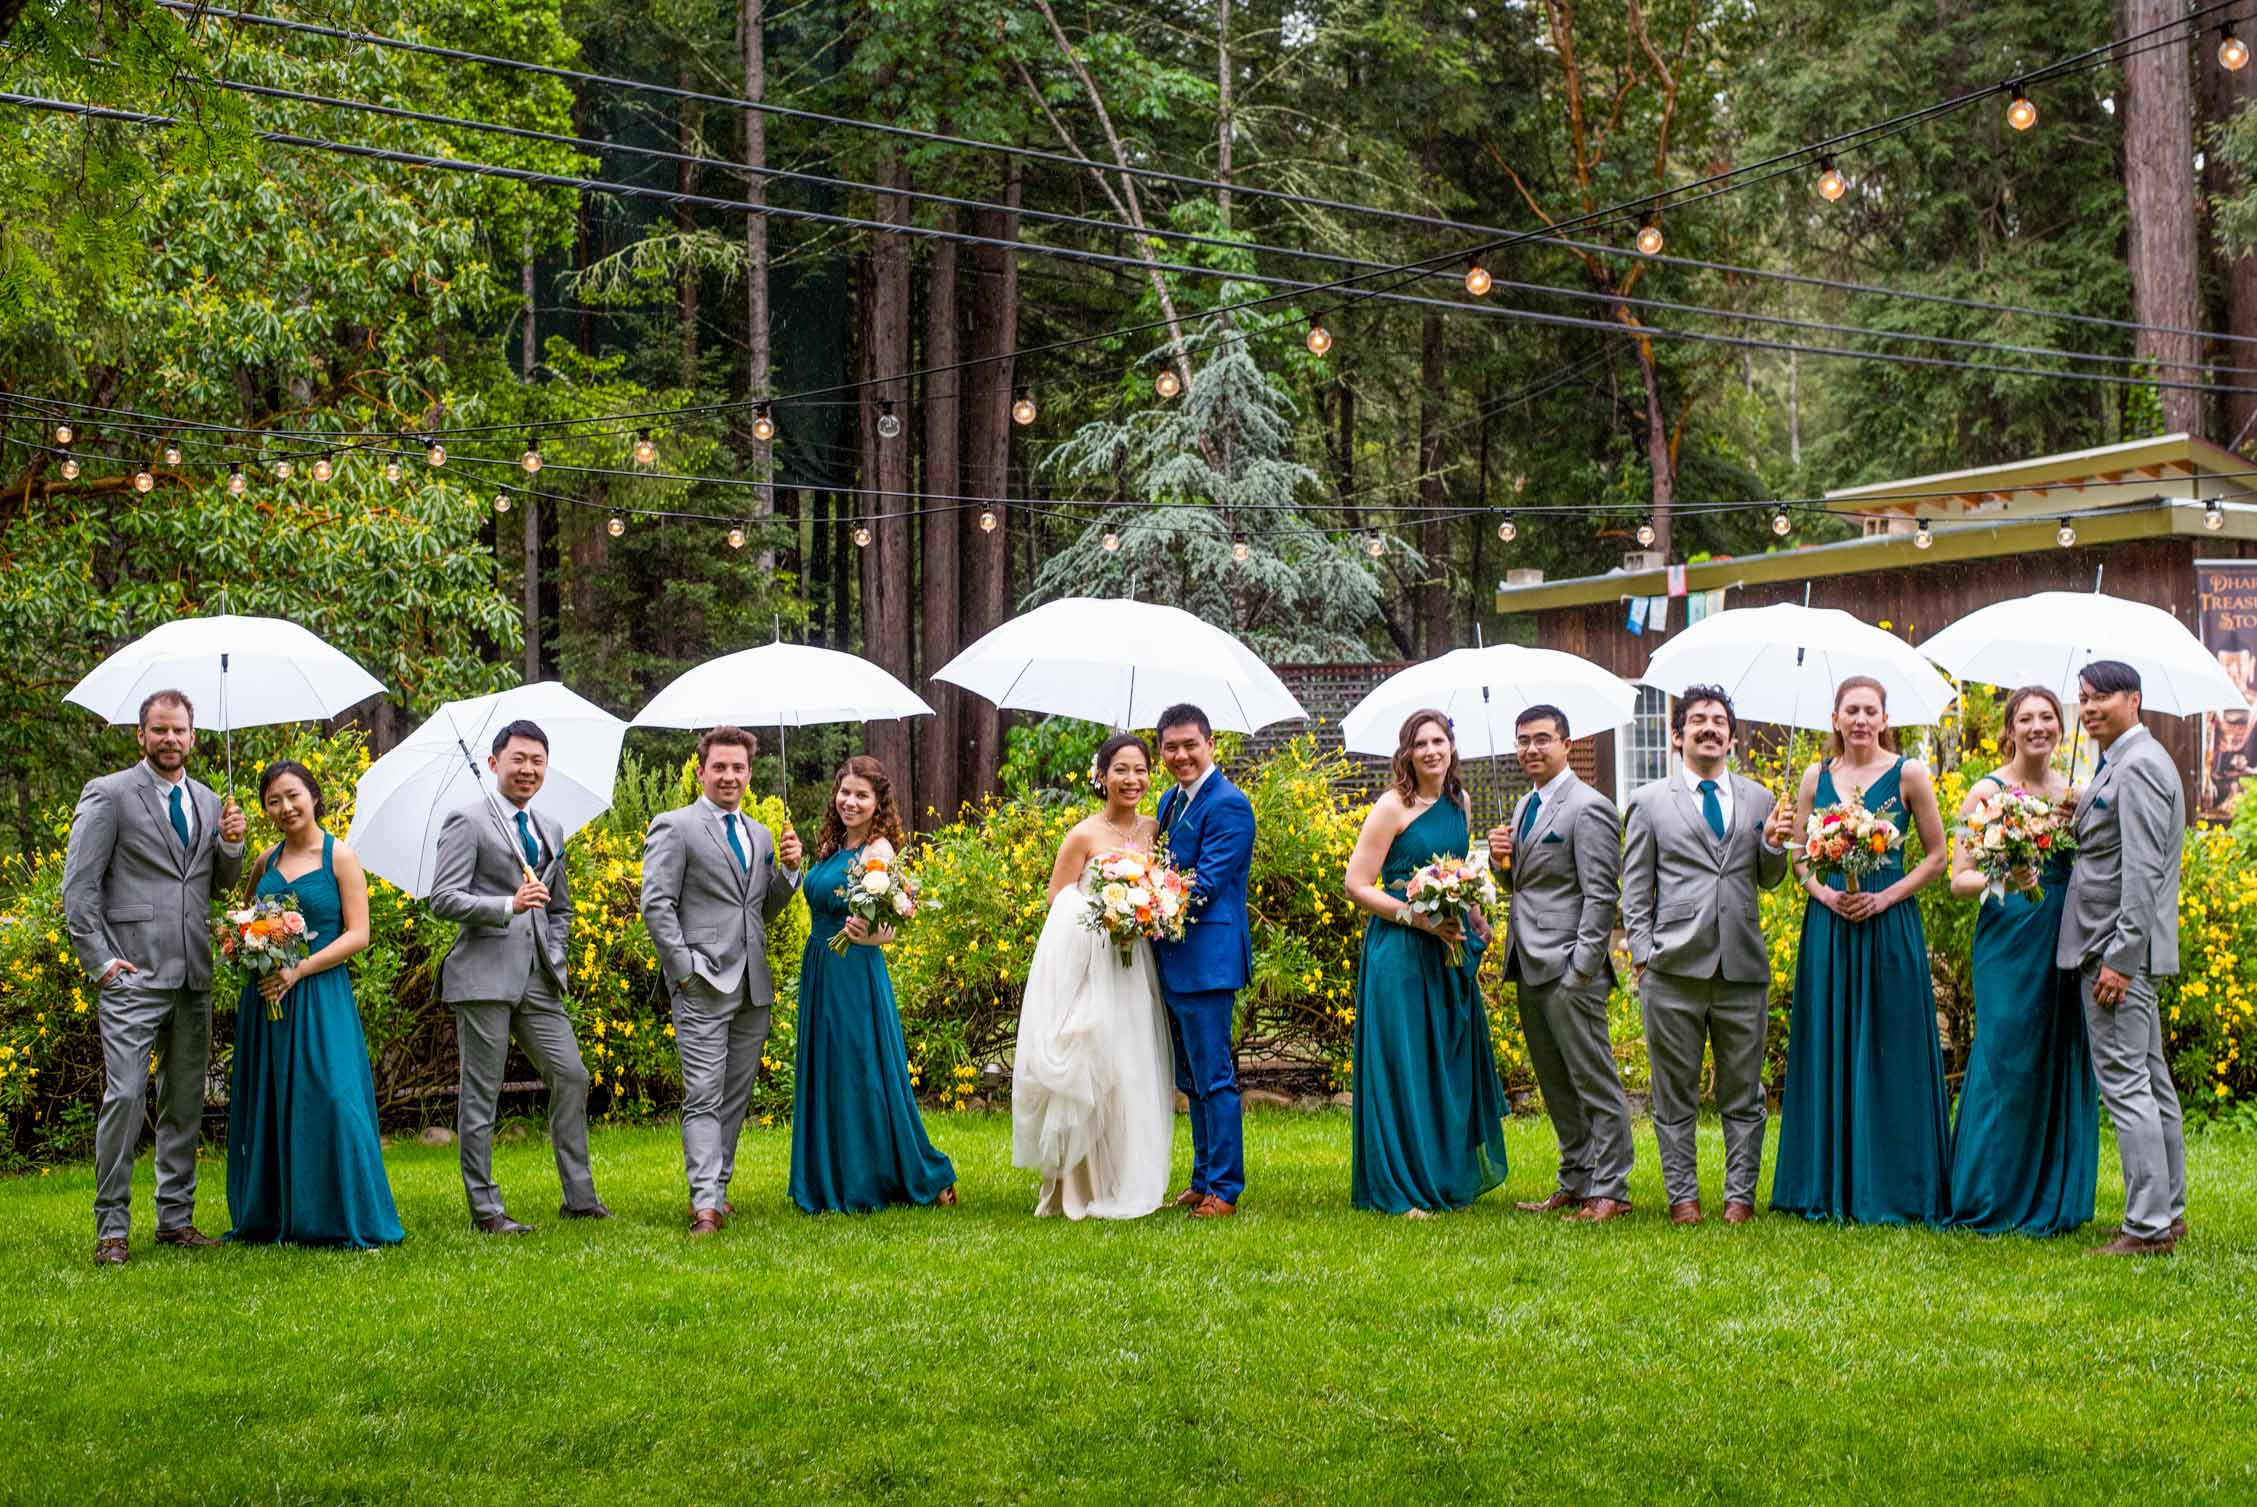 Large wedding party in teal and gray on redwoods lawn with string lights